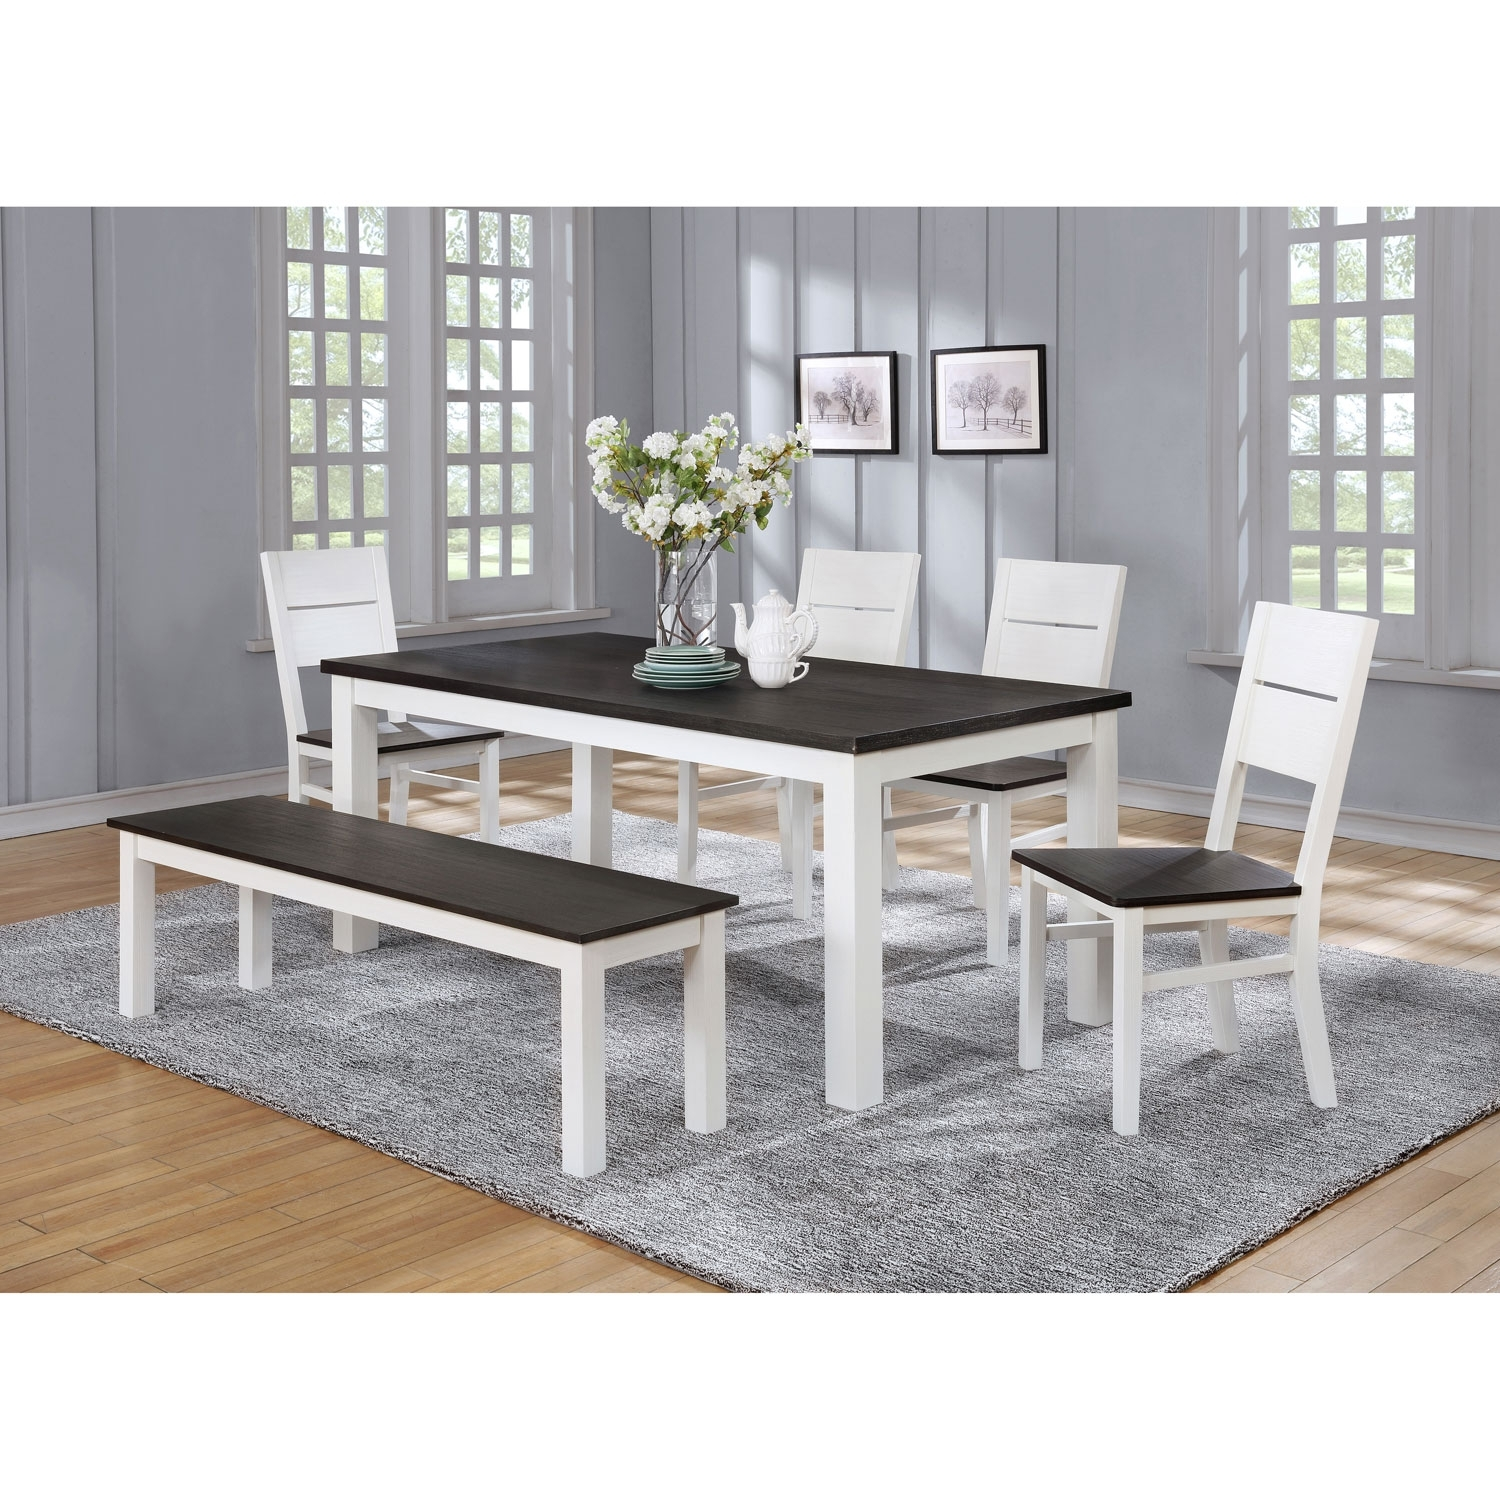 Lauren Traditional 6 Seating Rectangular Casual Dining Table – White Regarding Best And Newest Laurent 7 Piece Rectangle Dining Sets With Wood Chairs (Photo 13 of 20)